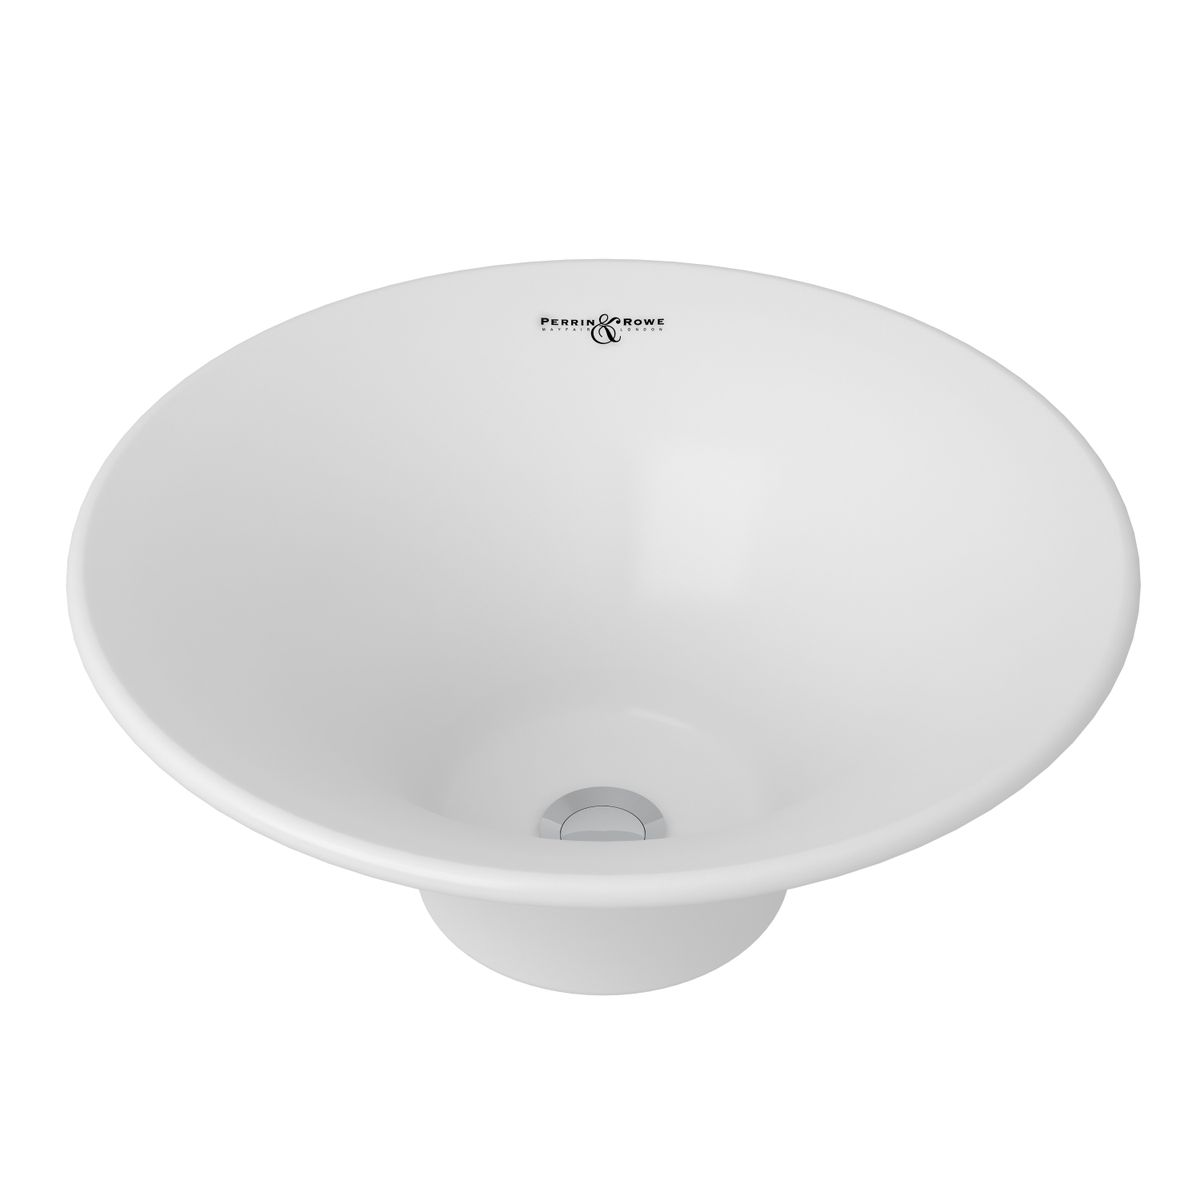 ROHL Perrin & Rowe Vessel Sink without Overflow_U2518WH